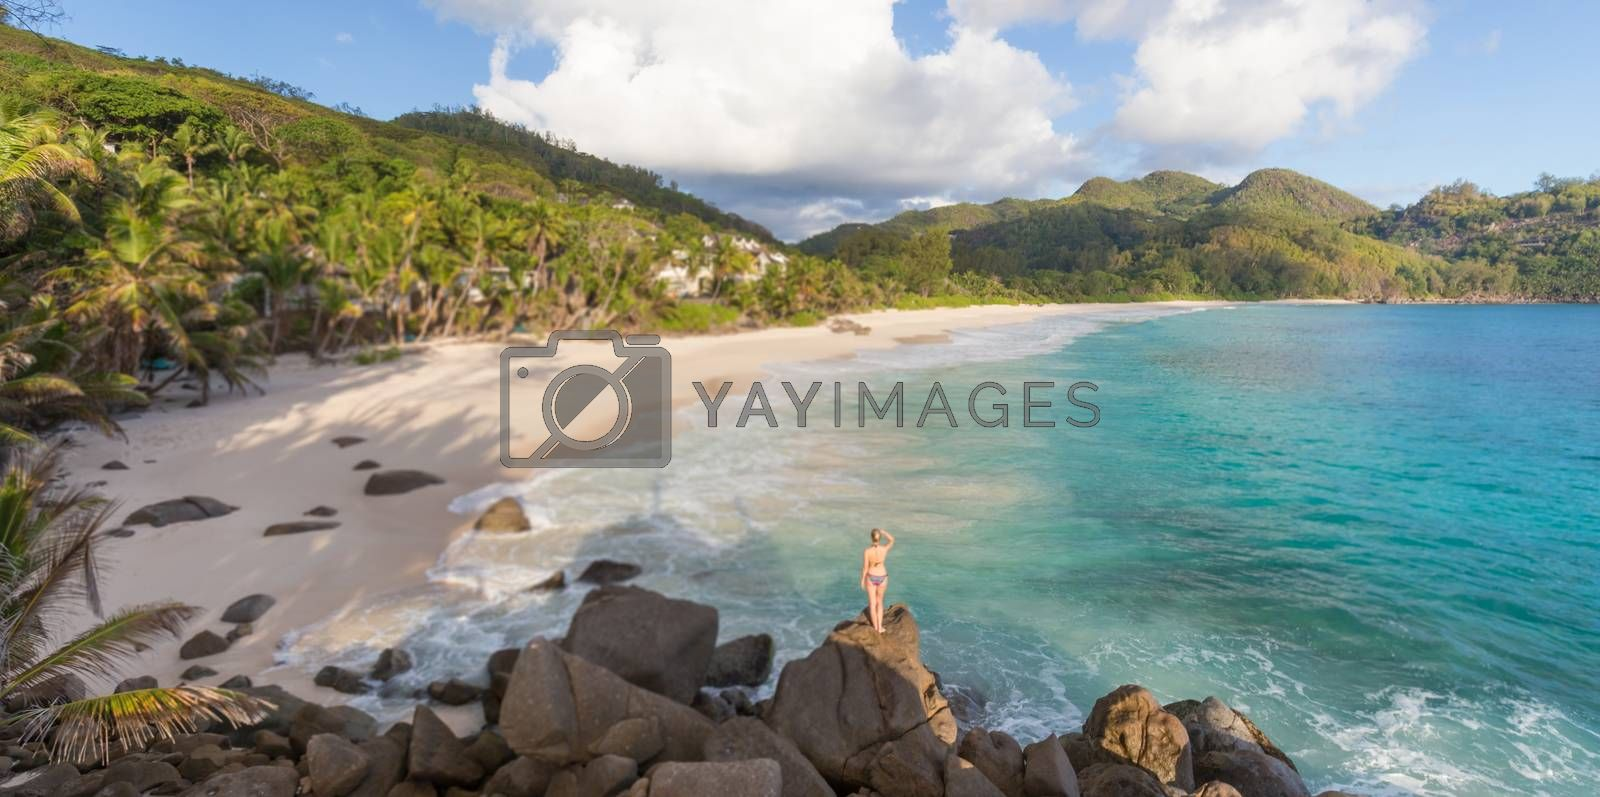 Woman in bikini enjoying beautiful view of Ance Intendance paradice beach from perfect round rocks on Mahe Island, Seychelles. Summer vacations on picture perfect tropical beach concept.